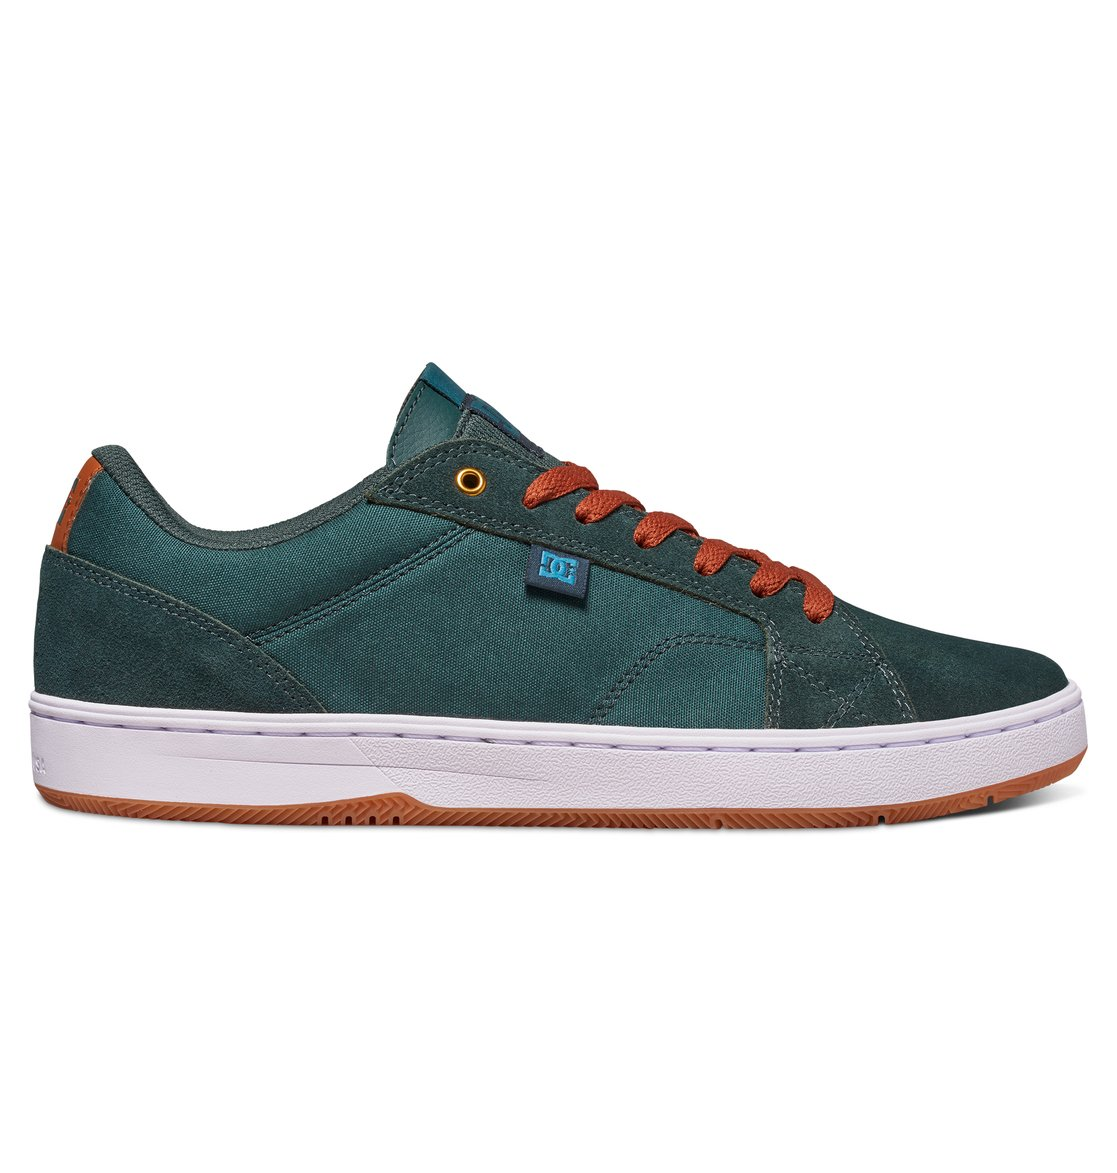 Dc Shoes Astor Green